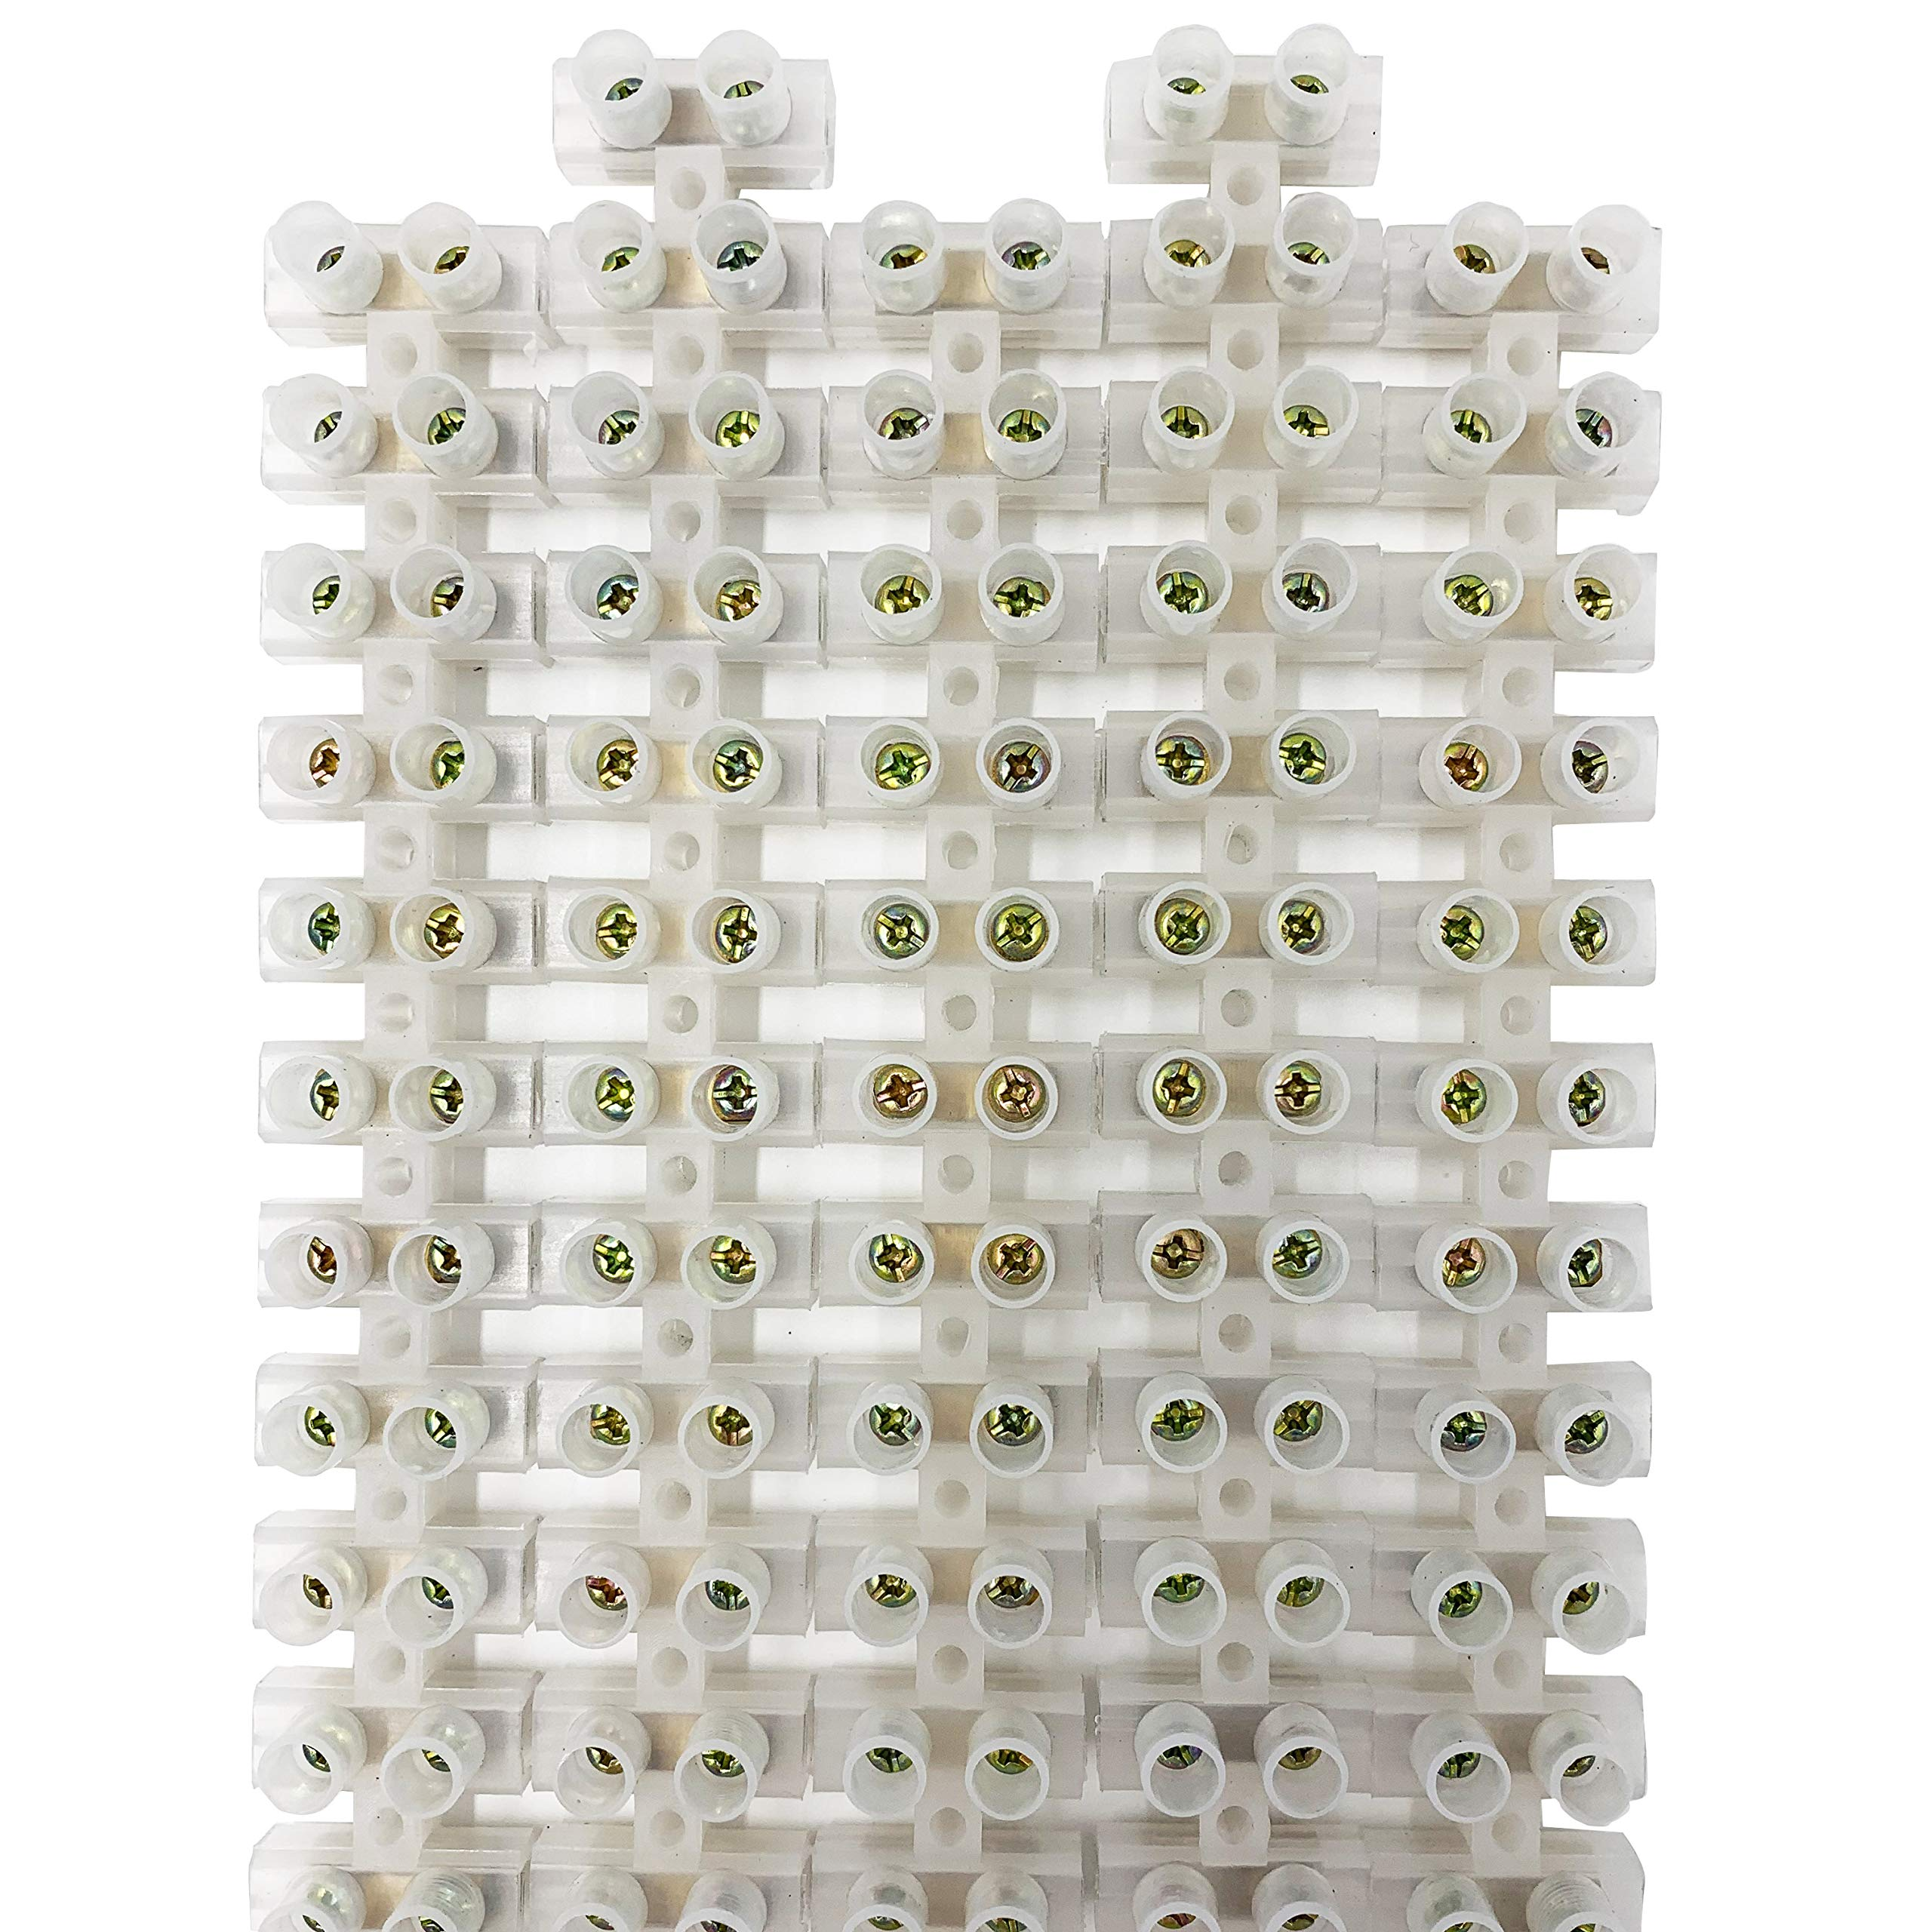 Terminal Block, PUSU Dual Row Terminal Barrier Strip, Euro Terminal for 25mm2 Wire Gauge, 12-Position 60Amp 380V (Pack of 5)